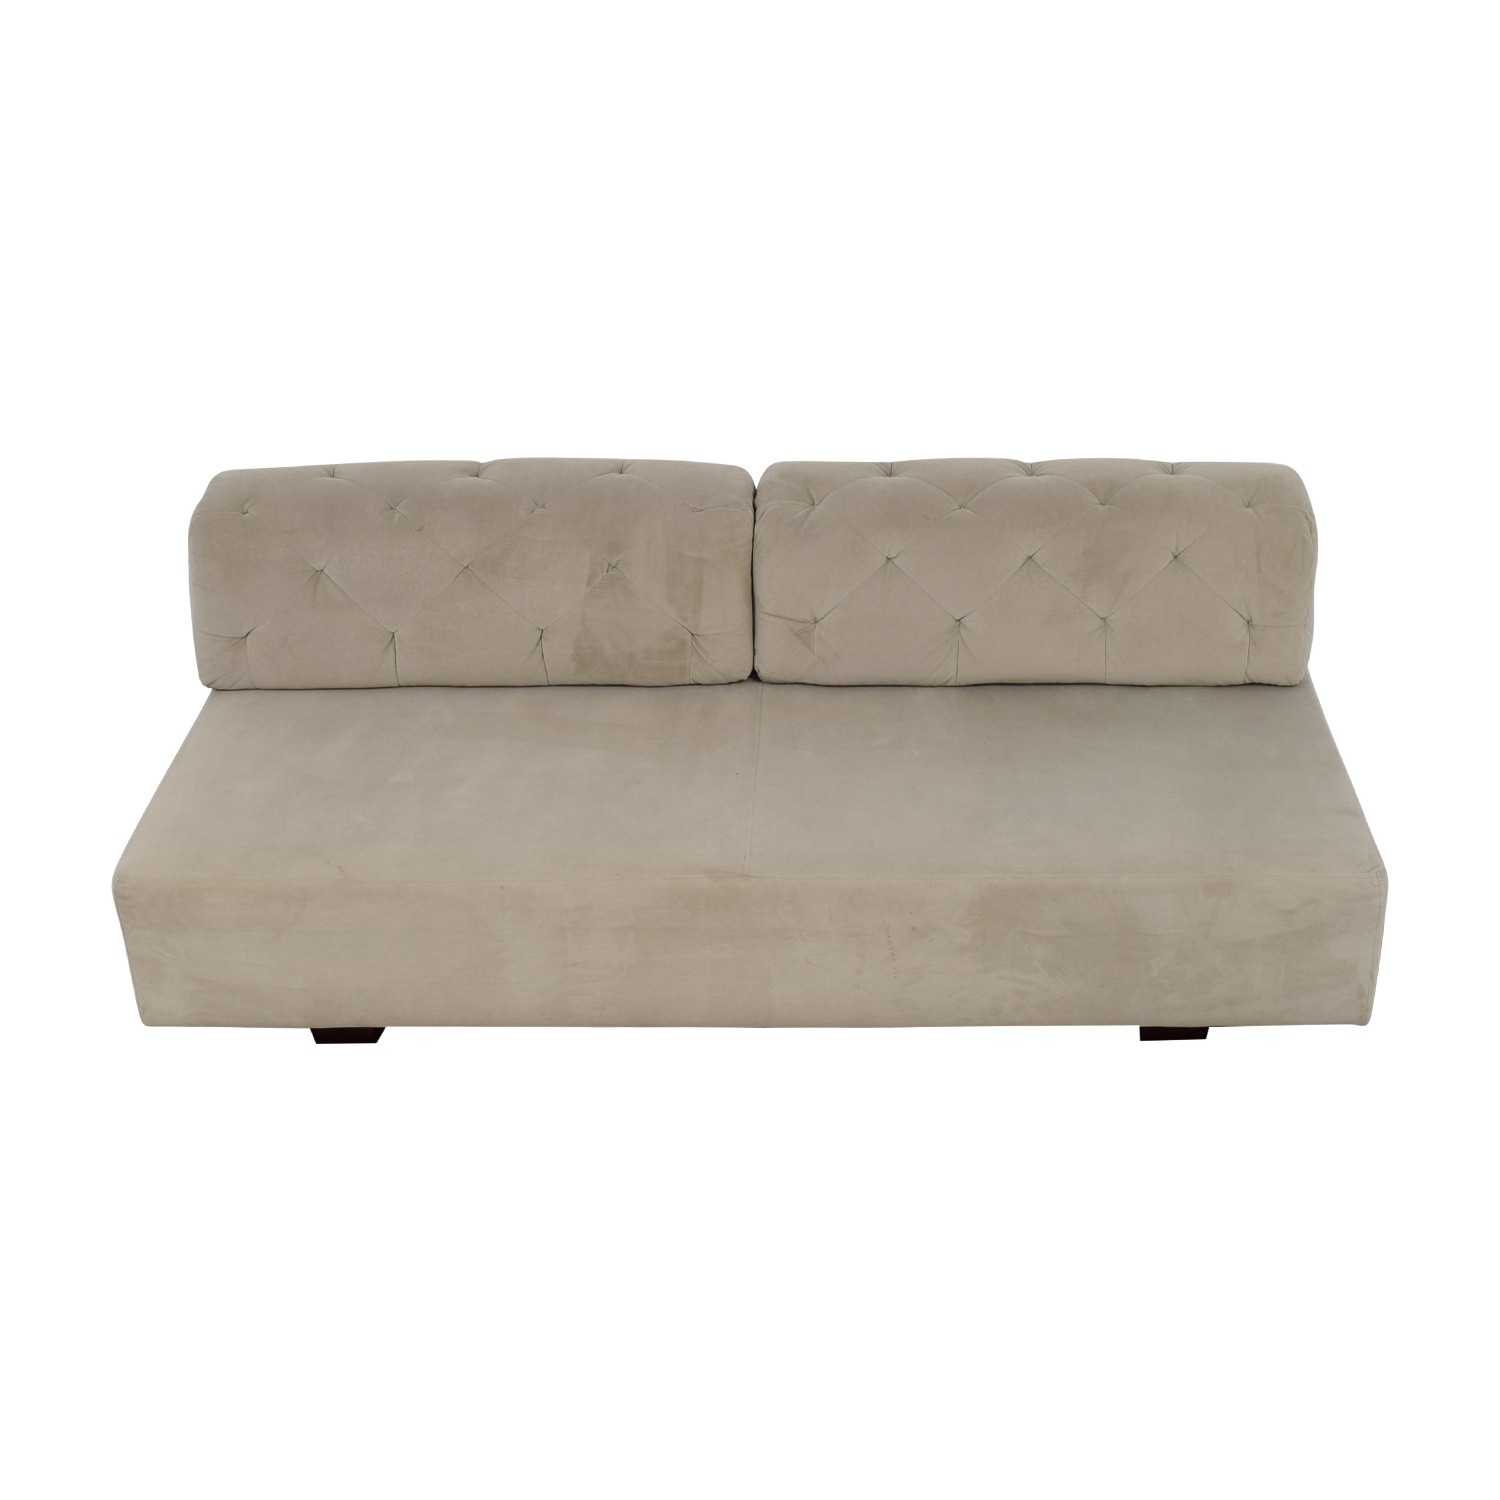 West Elm West Elm Beige Tuffed Sofa discount